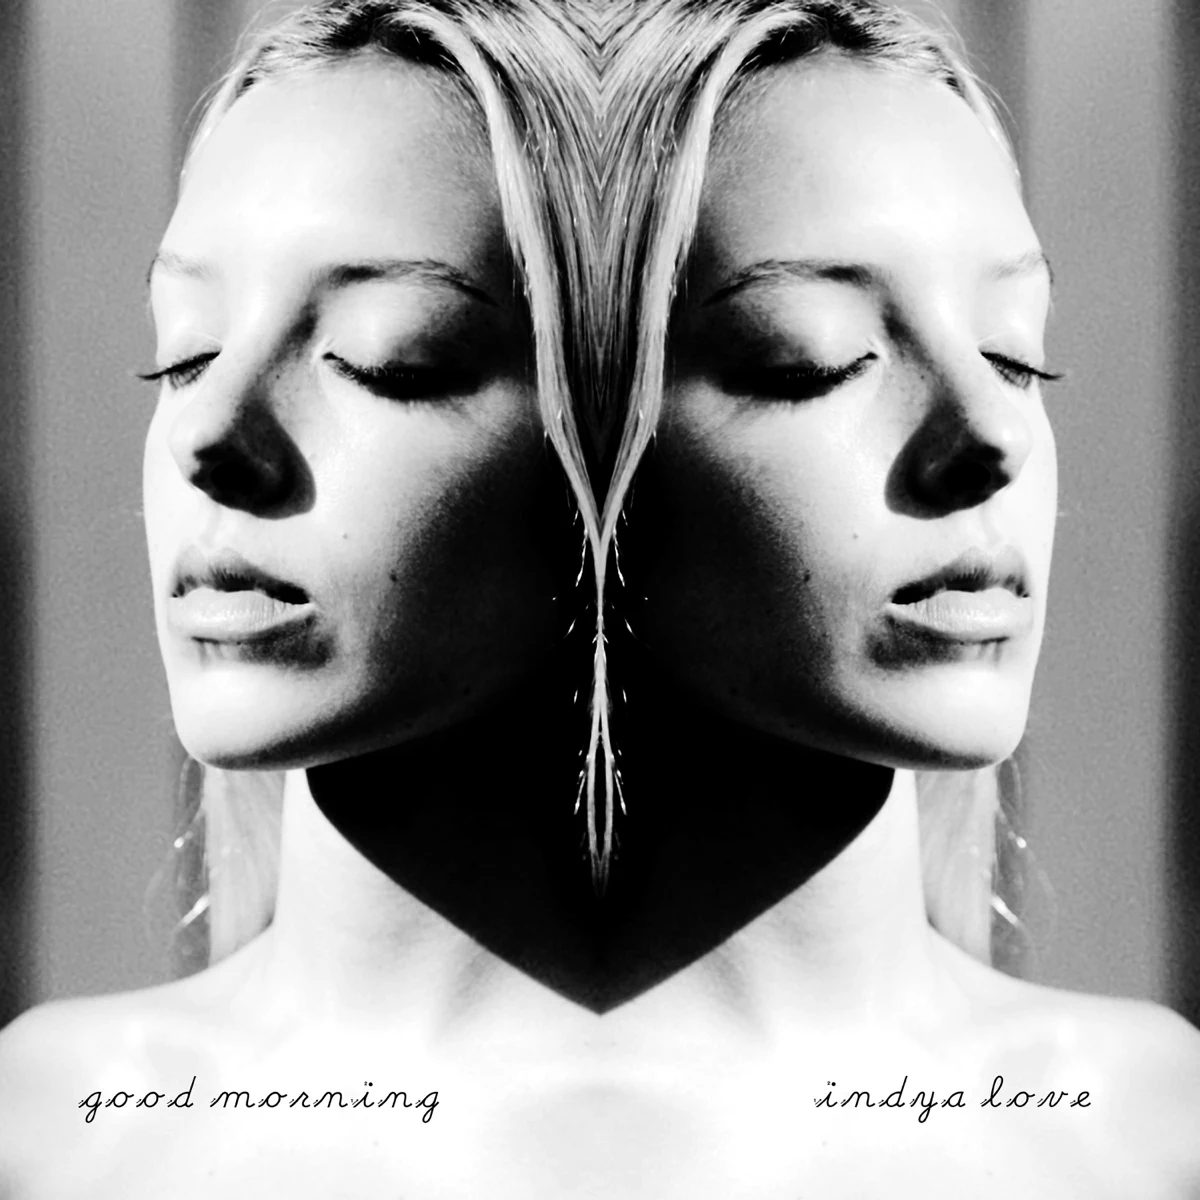 6699 - Dave Stewart and Indya Love - Good Morning - Worldwide - Download - None